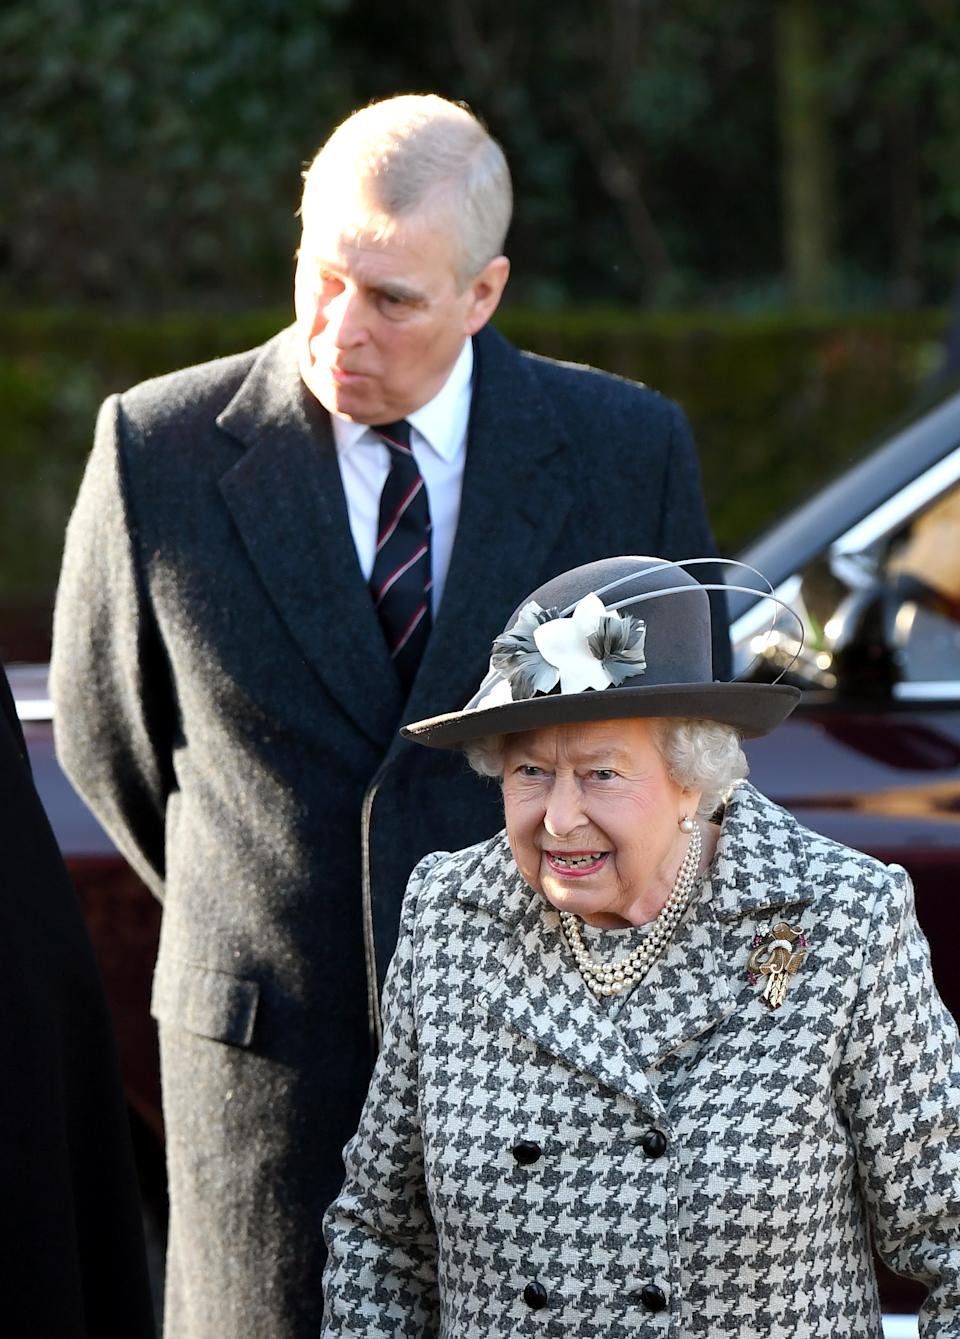 Queen Elizabeth II and Prince Andrew, Duke of York attend church at St Mary the Virgin church, Hillington in Sandringham on January 19, 2020 in King's Lynn, England.